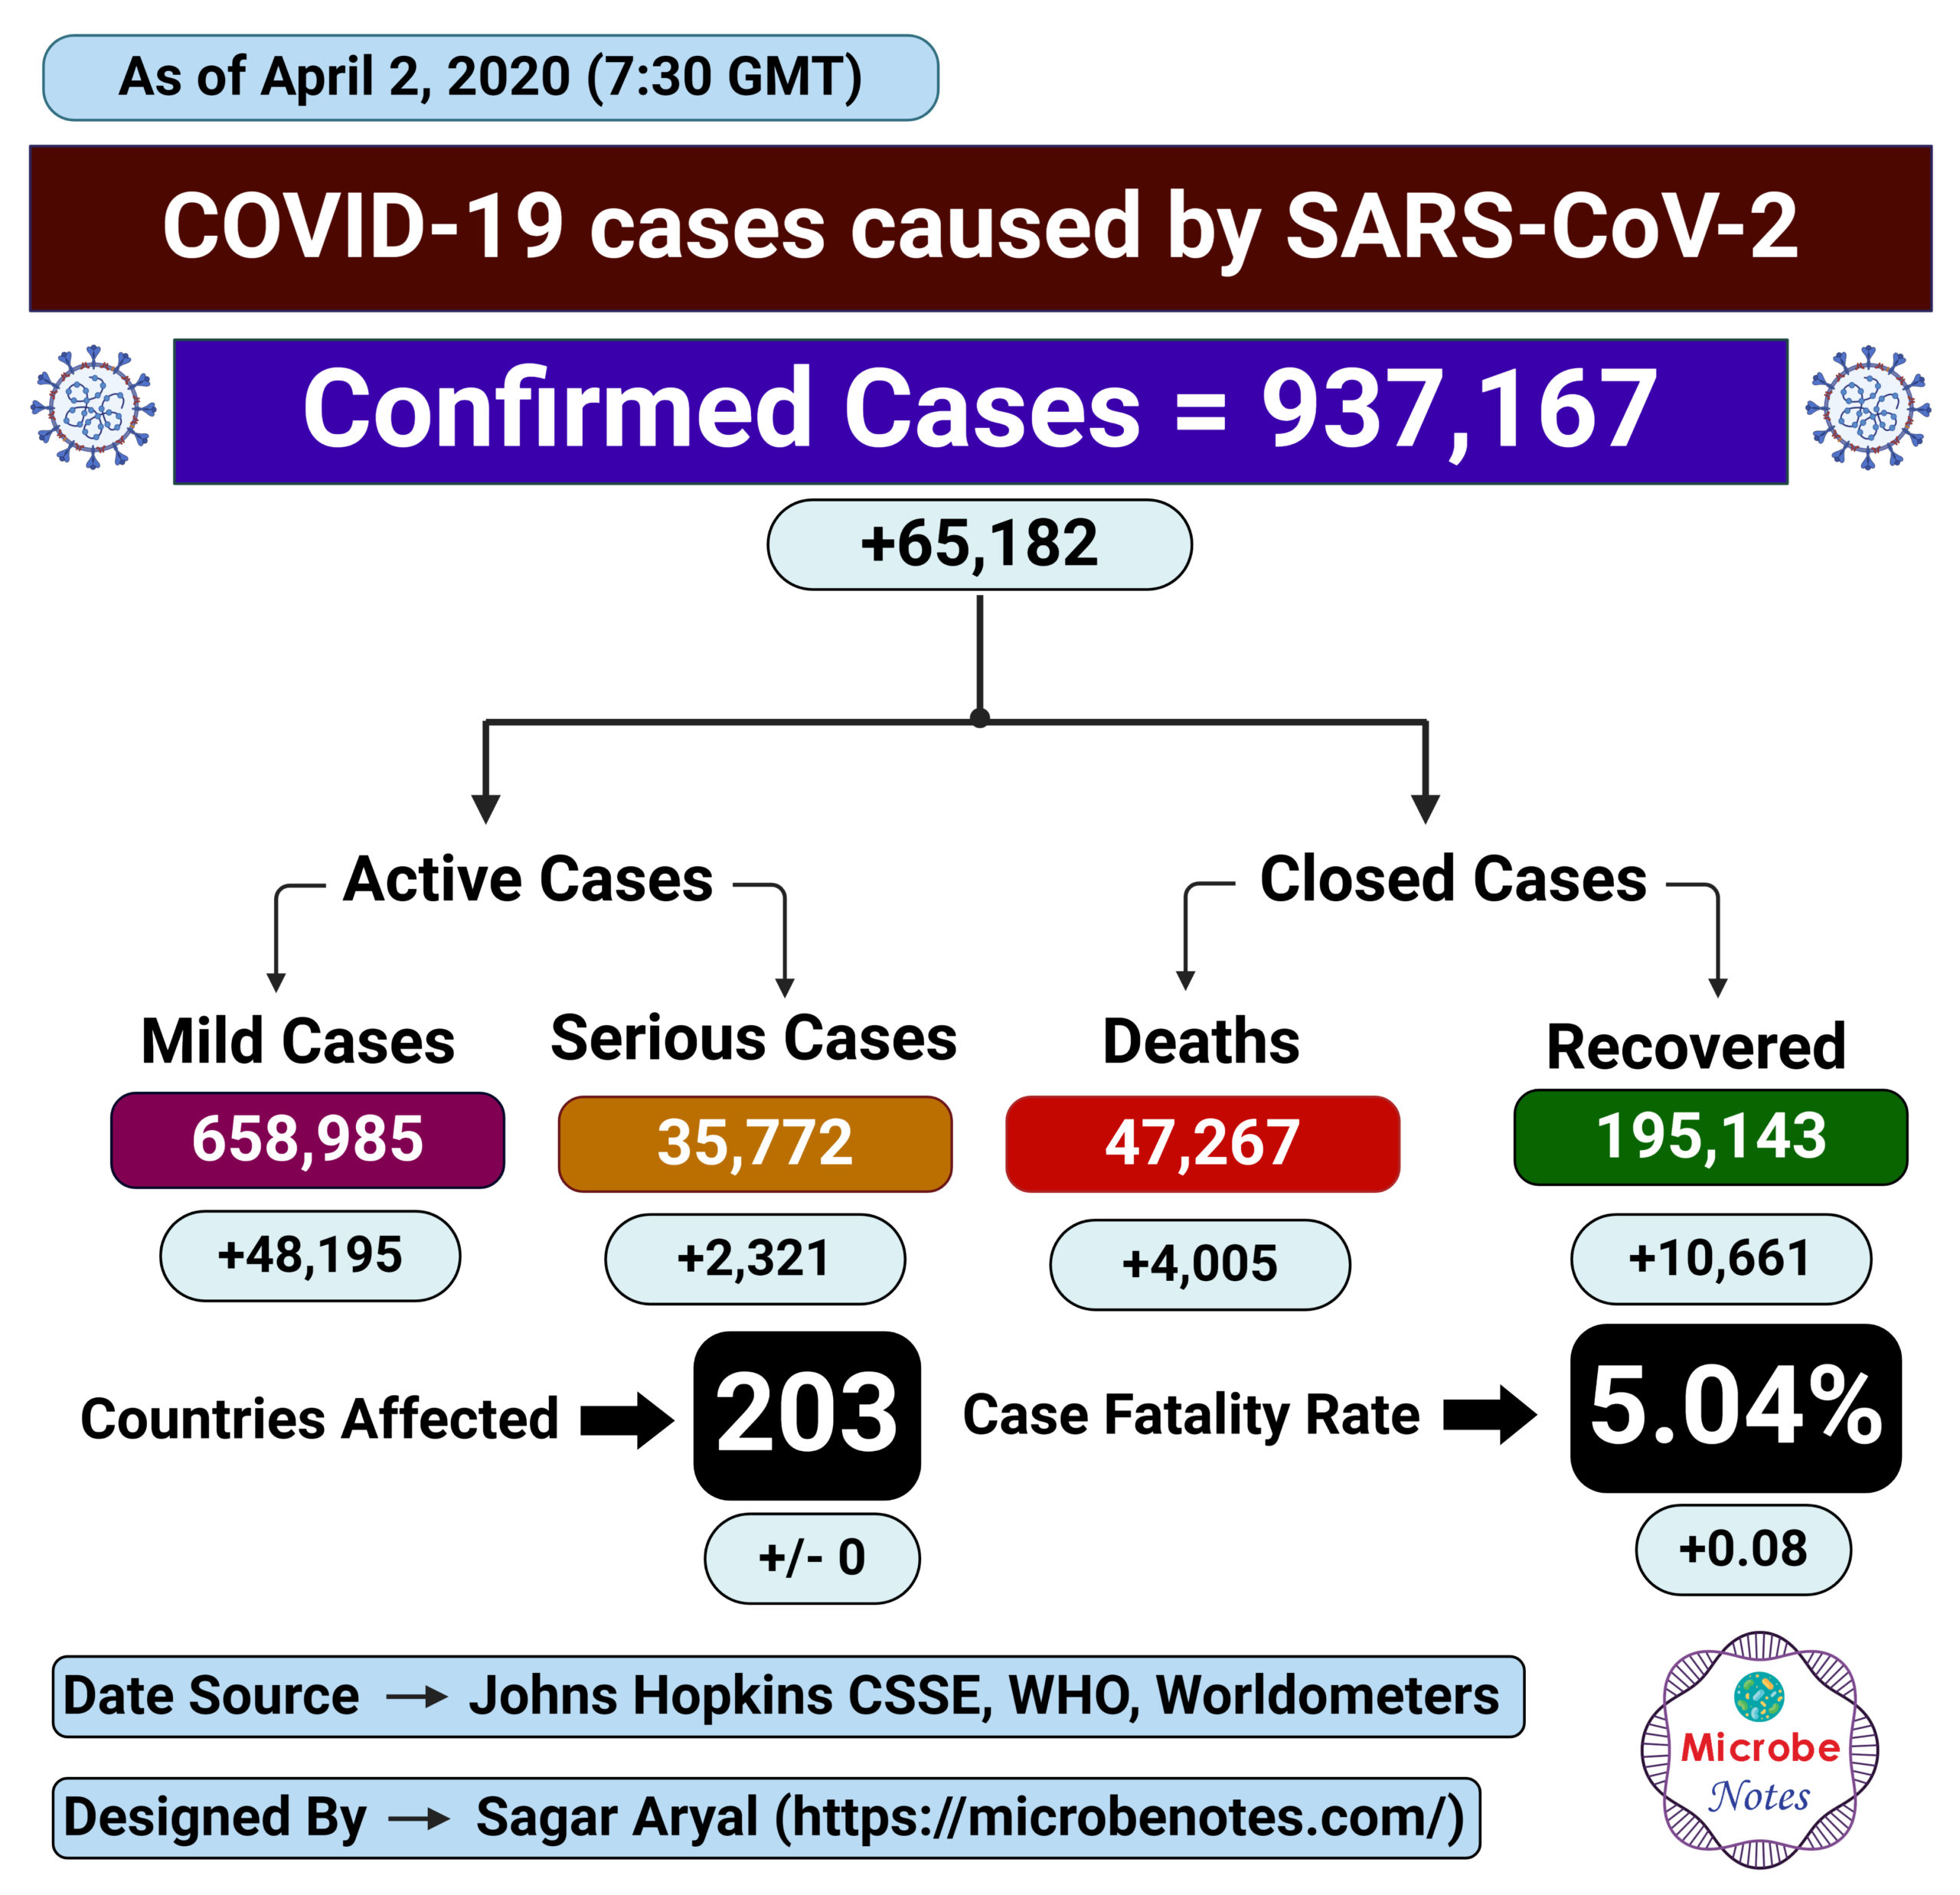 Epidemiology of COVID-19 caused by SARS-CoV-2 as of April 2, 2020